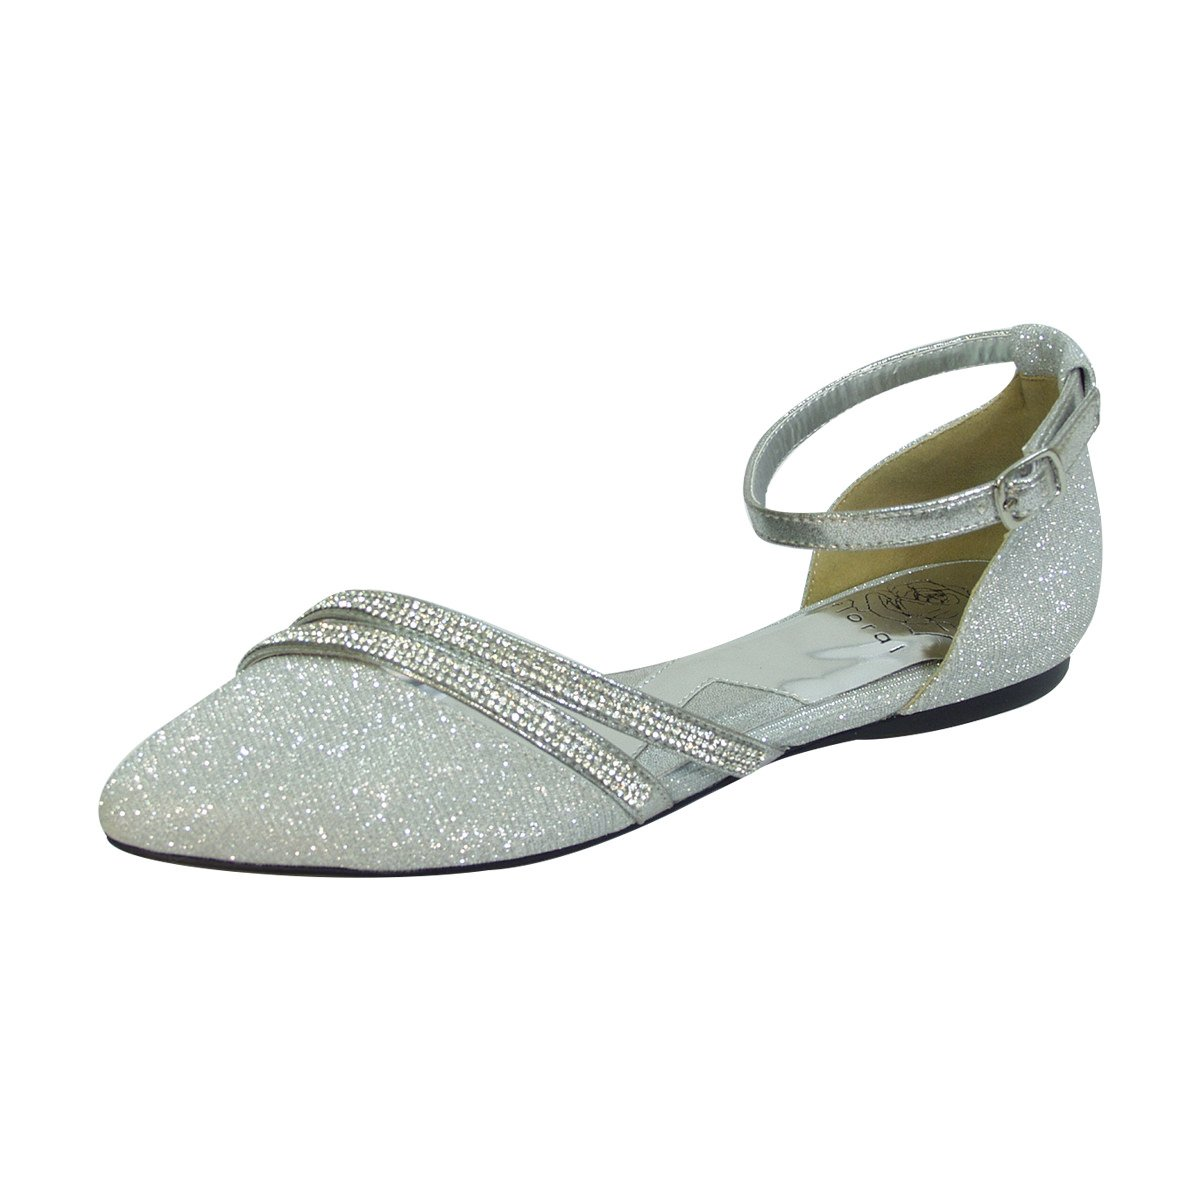 Fuzzy Hallie Women Wide Width Open Shank Pointed Toe Buckle Ankle Strap Flats (Size & Measurement) B0773WCVNF 8.5 D|Silver